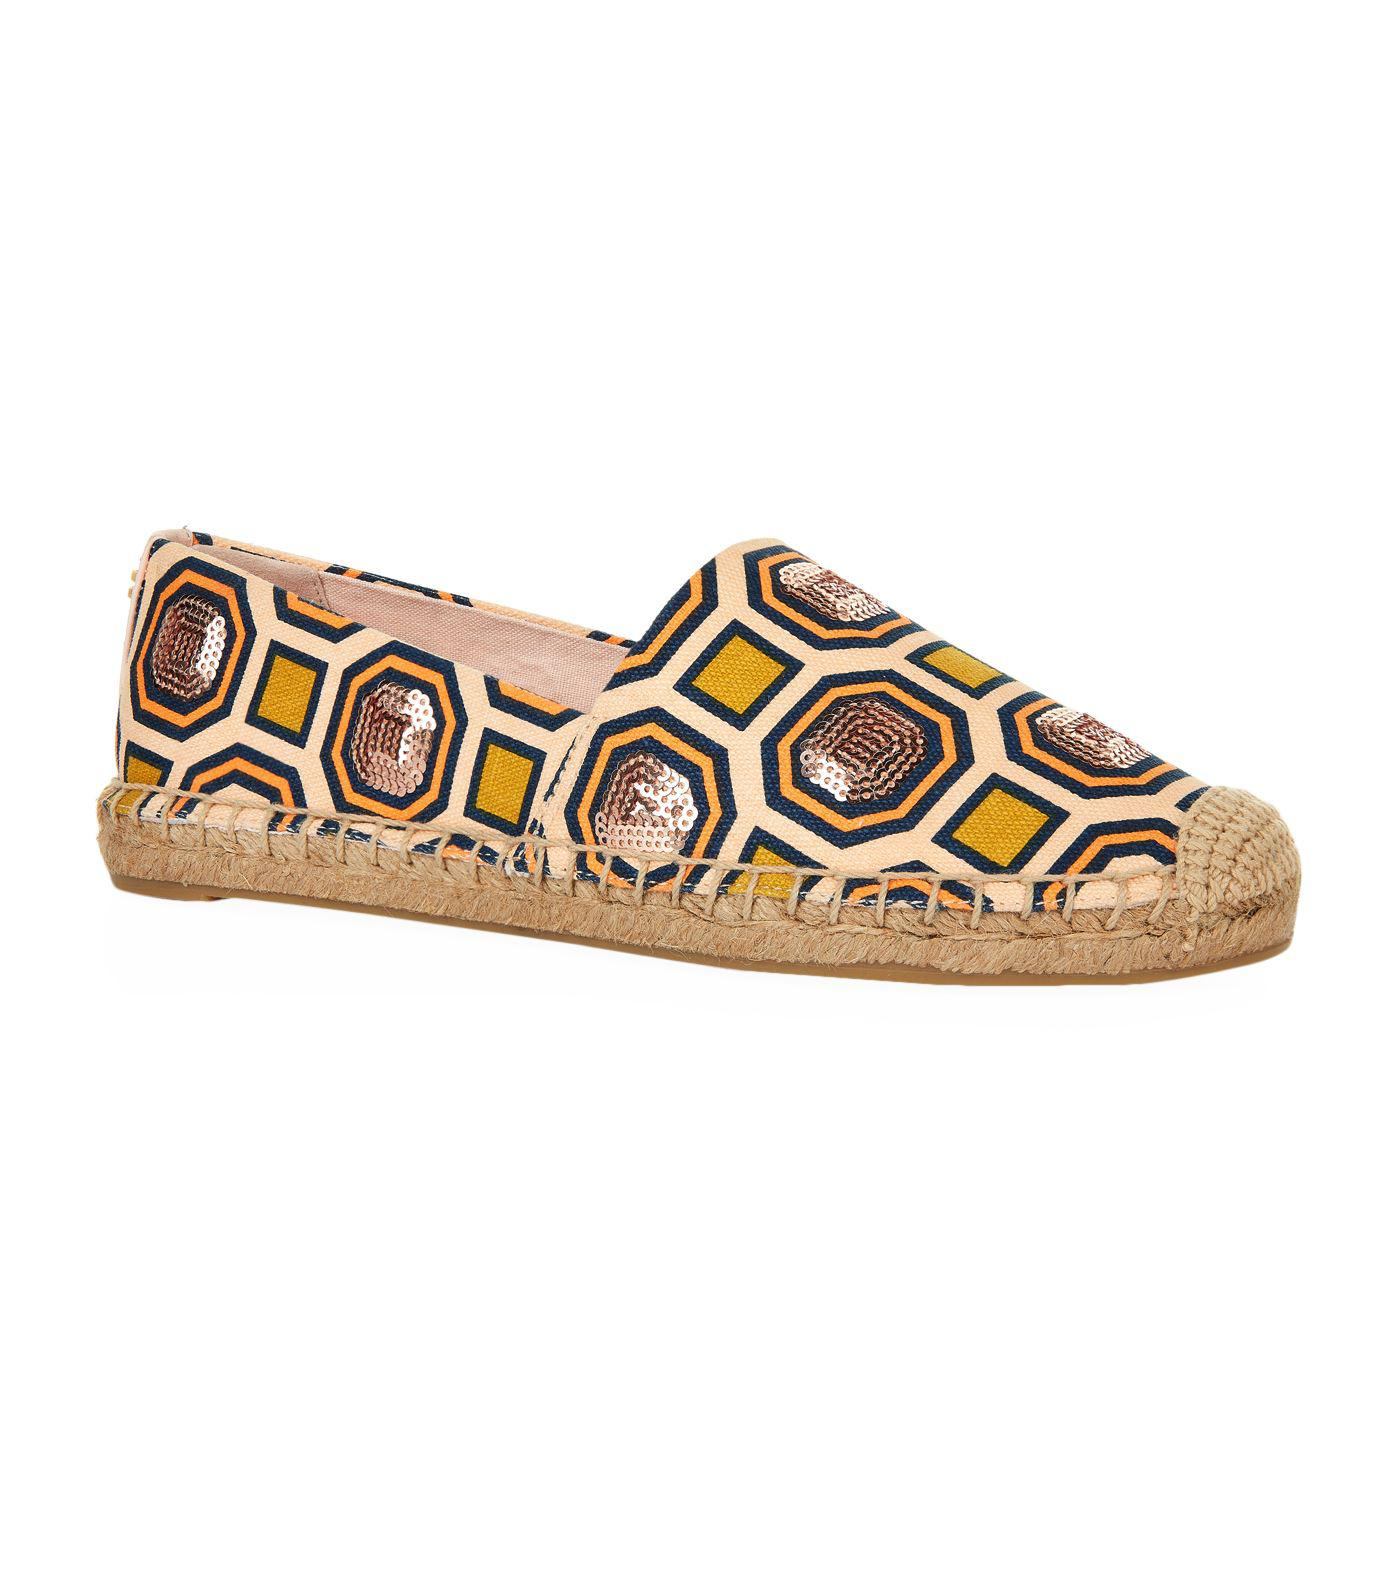 Tory Burch Designer Shoes, Cecily Ballet Octagon Square Canvas Embellished Flat Espadrilles